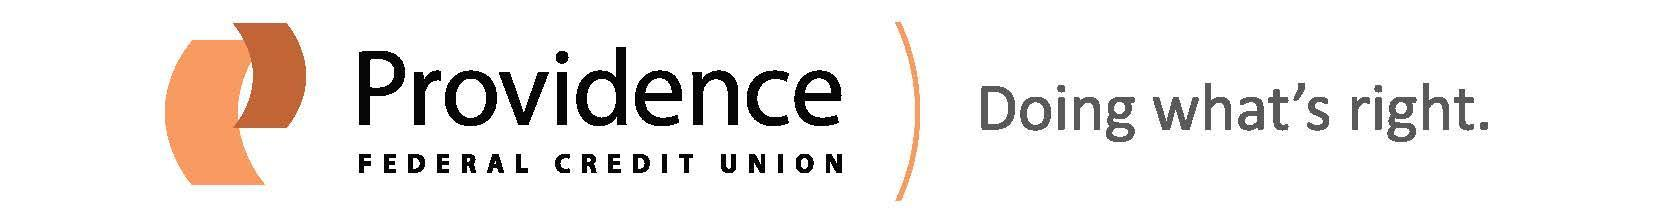 Providence Federal Credit Union logo